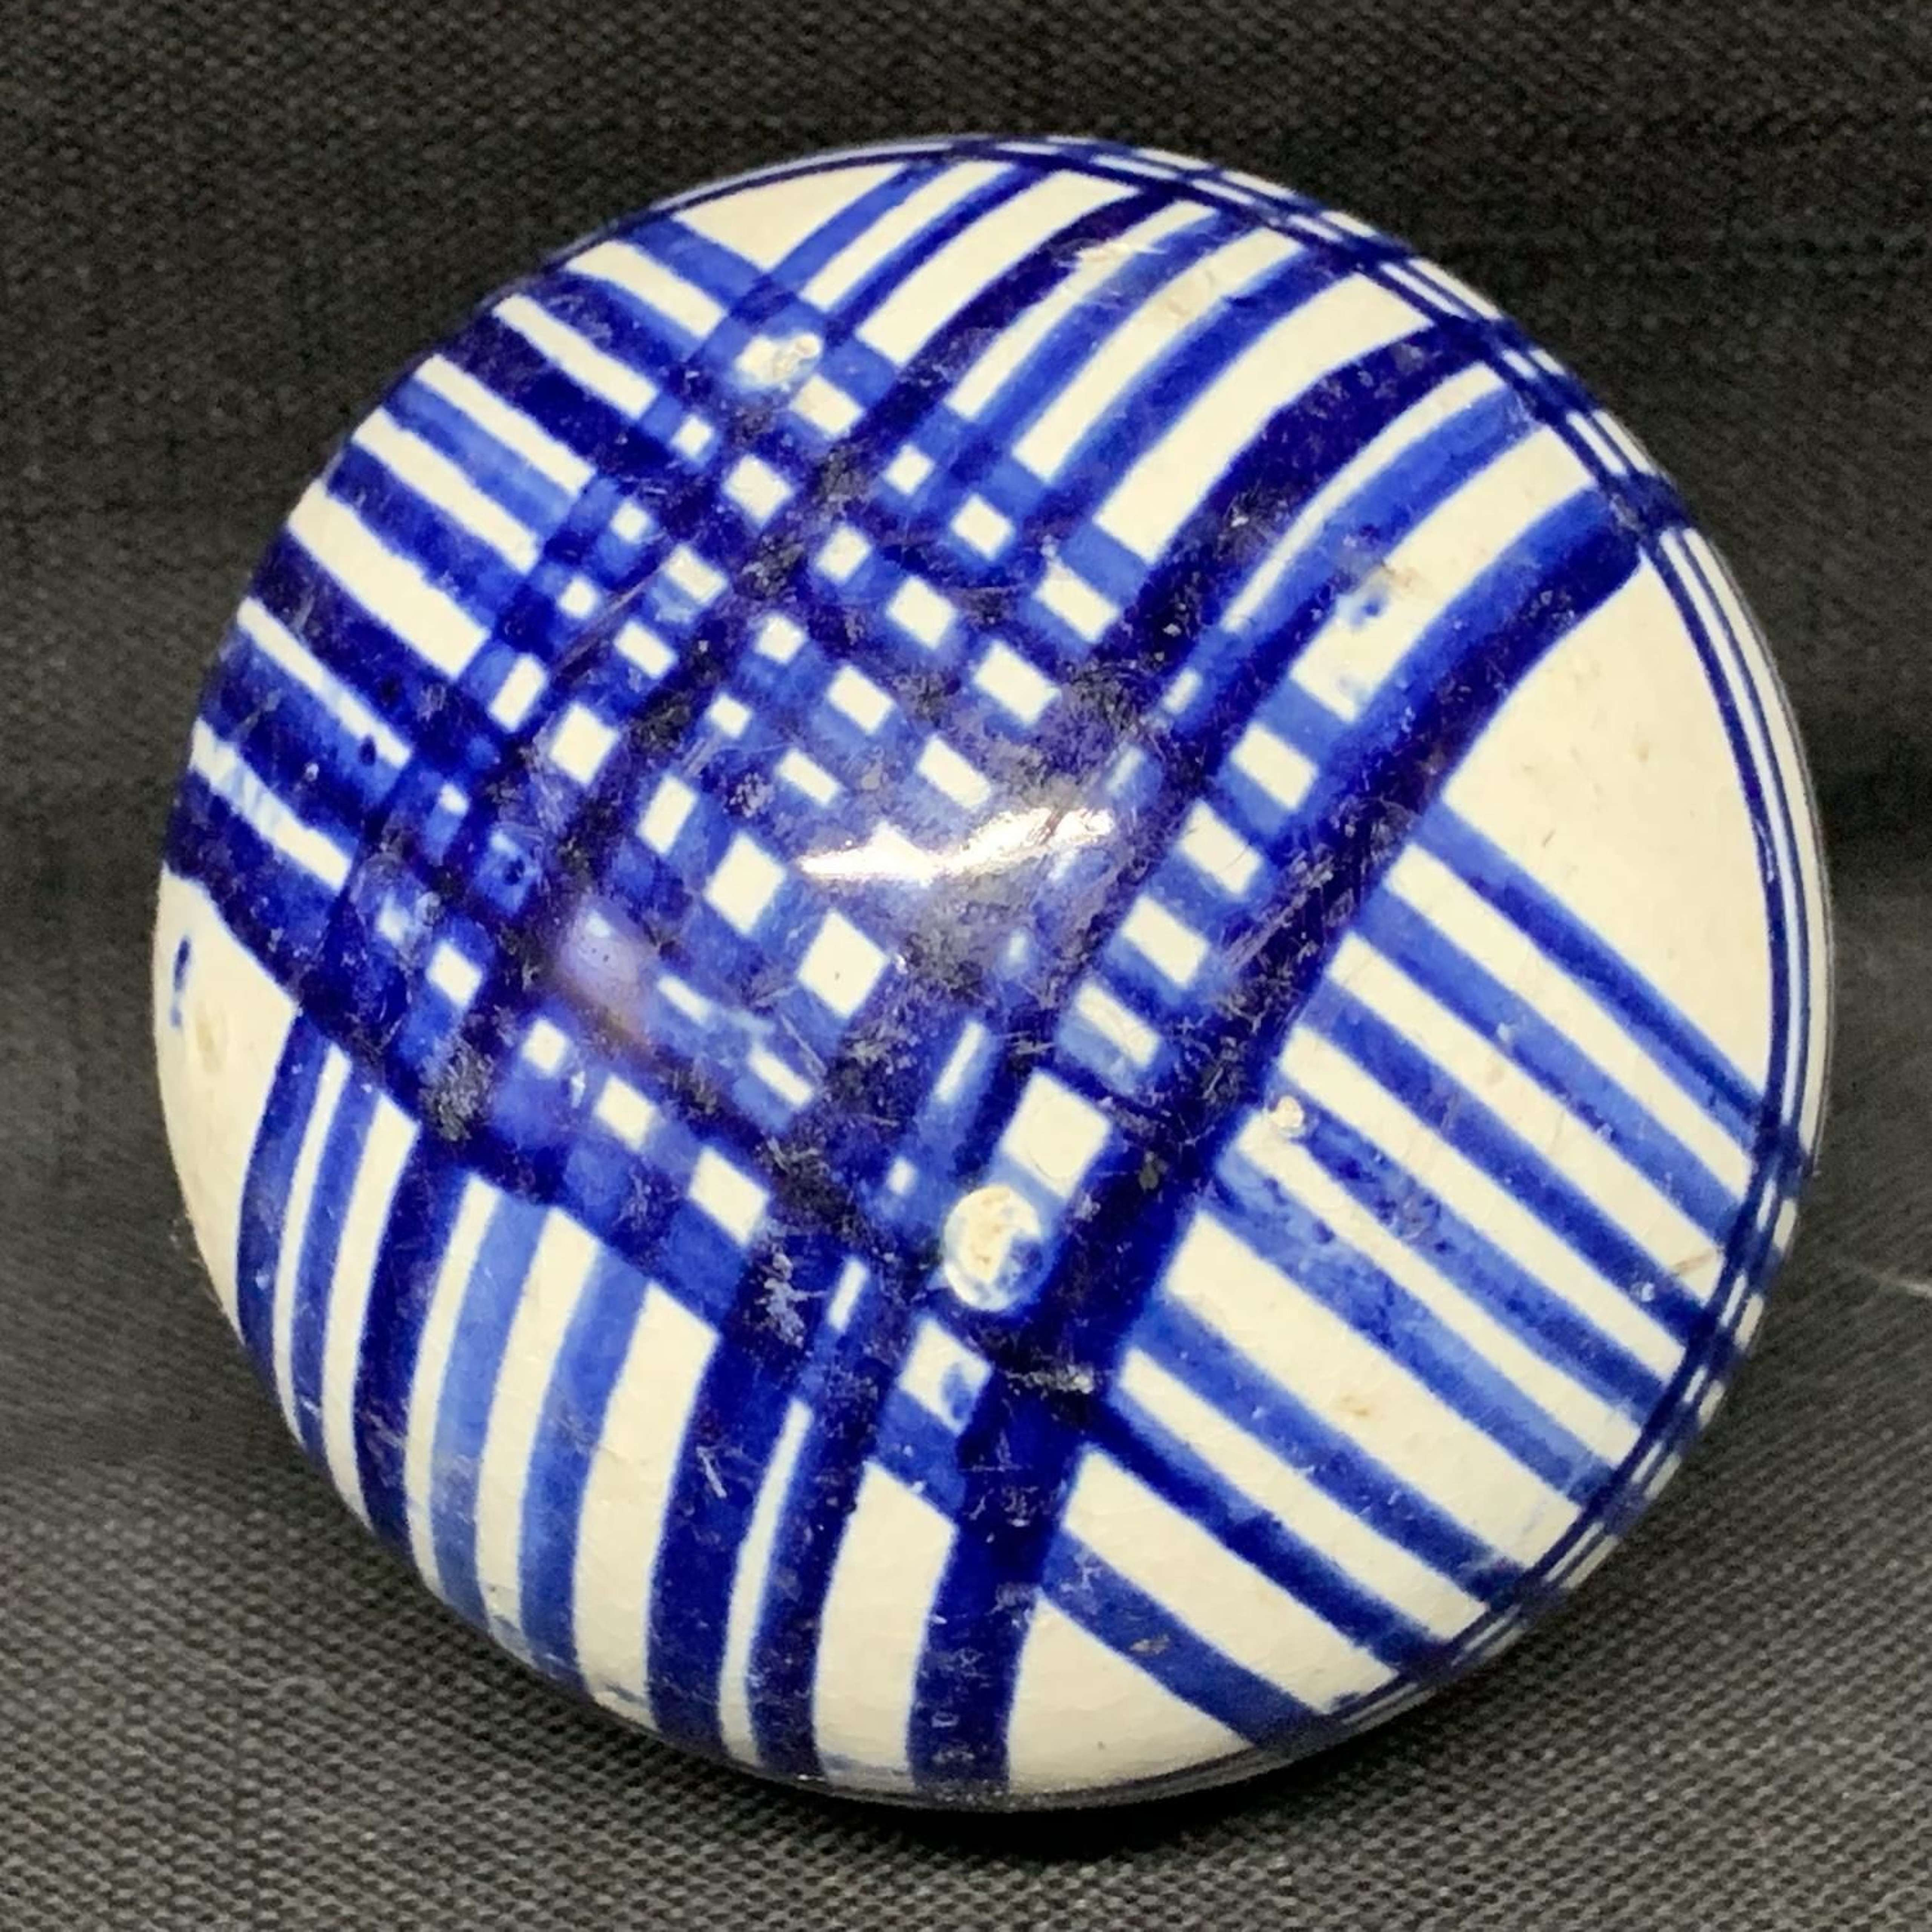 Victorian Ceramic Dark Blue Striped Scottish Carpet Ball 1860